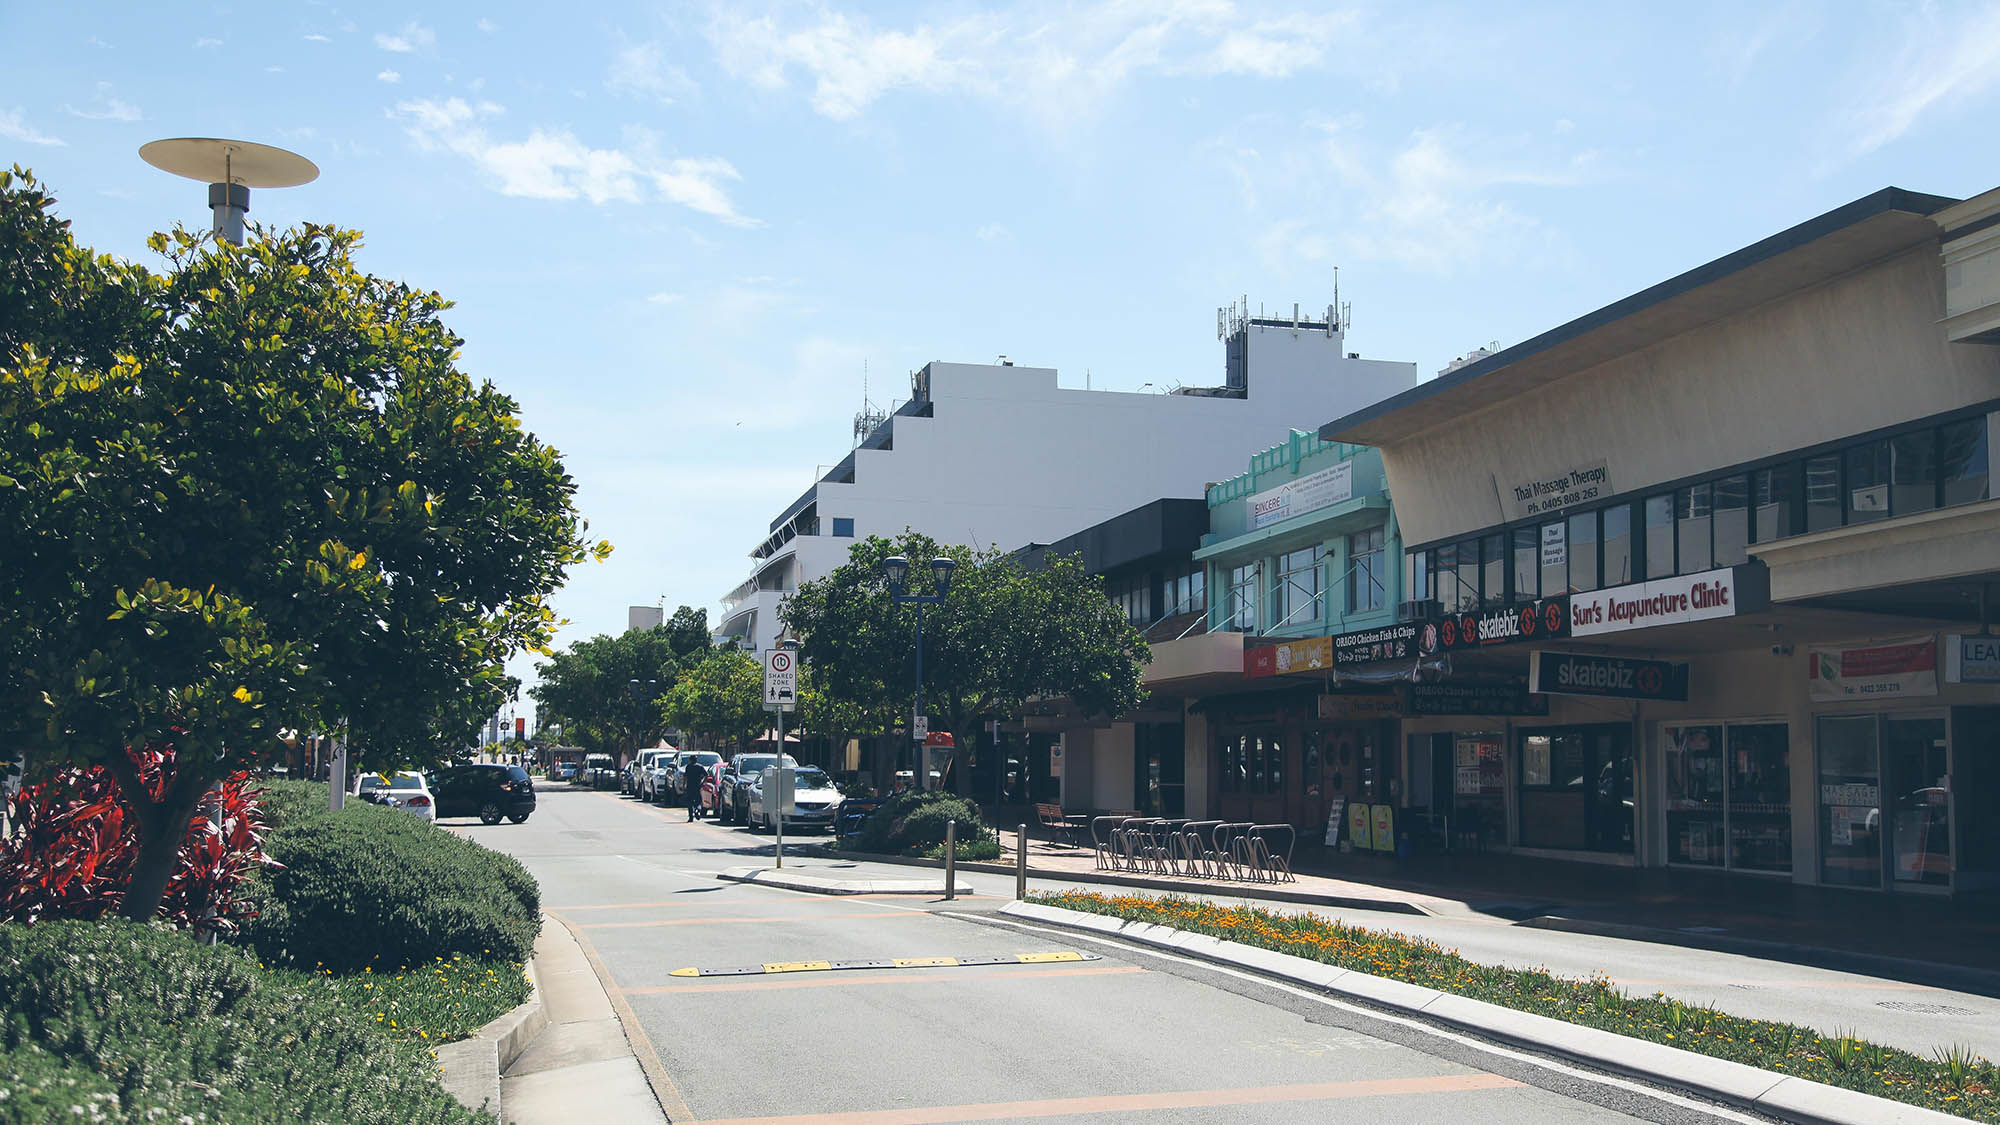 Adjacent to Australia Fair is the Southport mall, which is a great pedestrian throughfare from the parklands to the heart of the CBD.